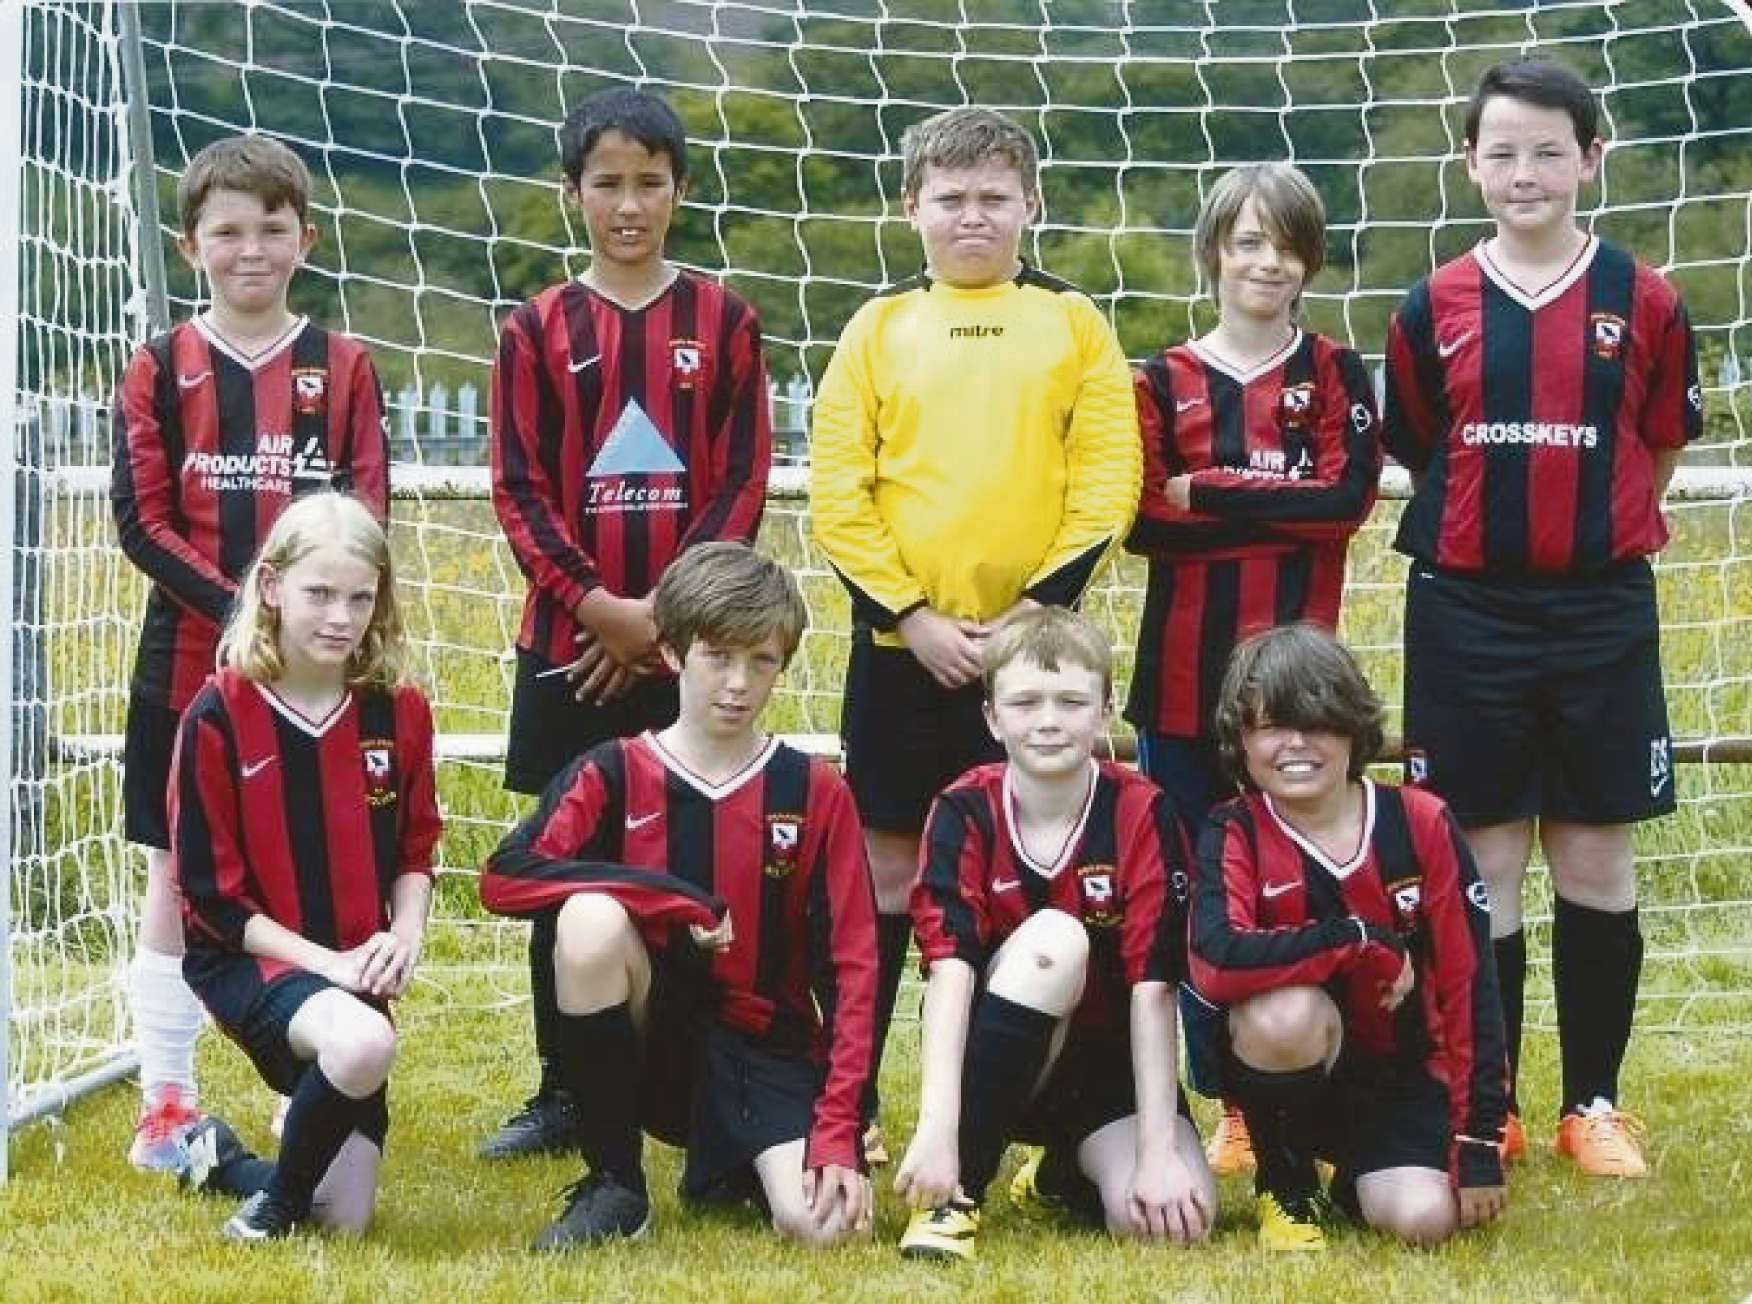 JOIN THE REAL TEAM: Dinas Powys Real Football Club is looking for U12s players for next season.